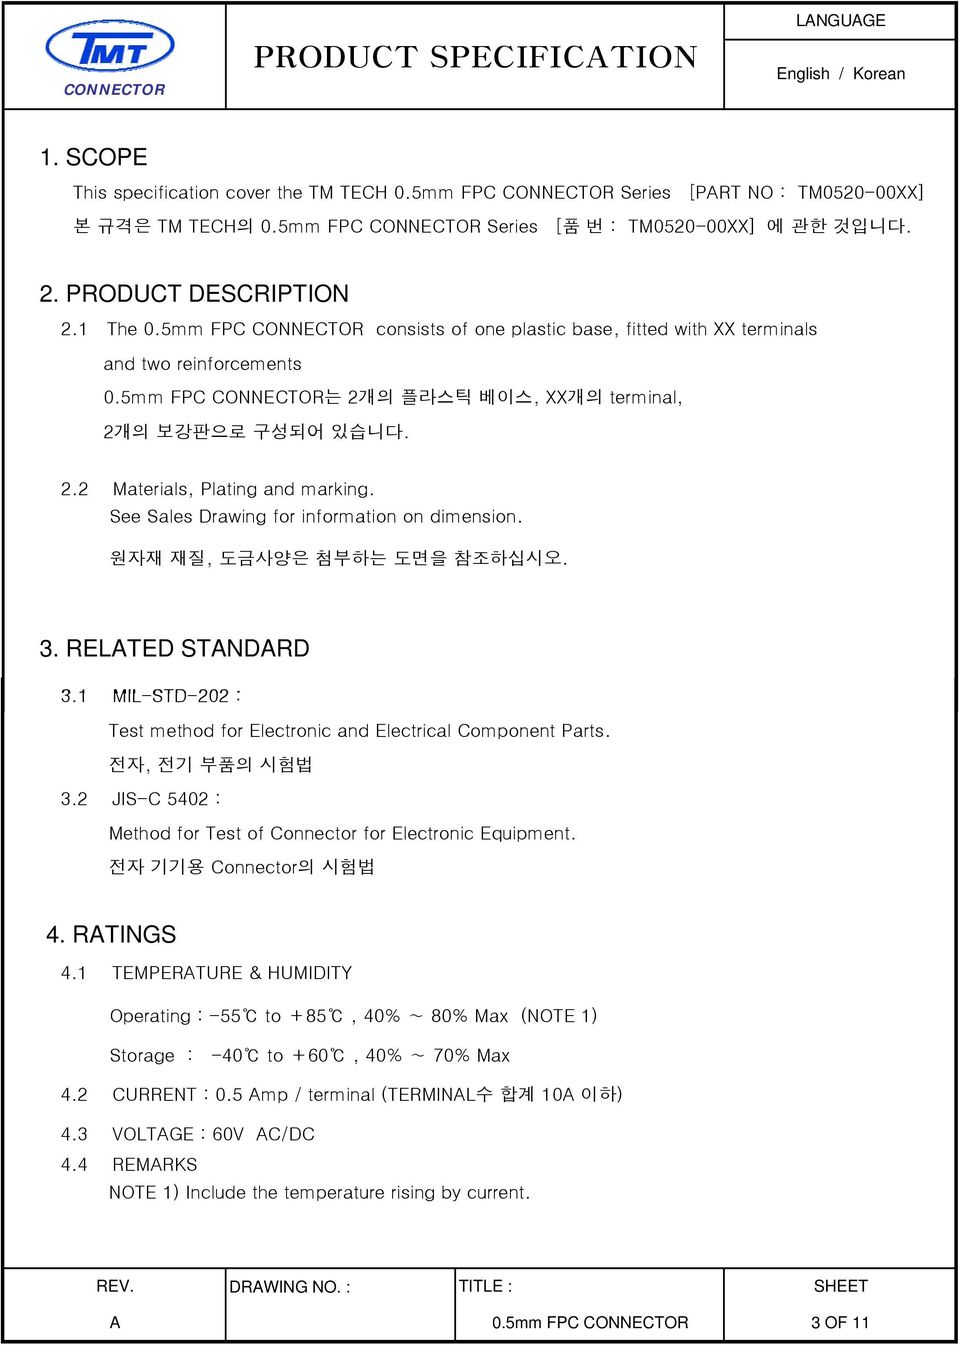 Connector product specification language english korean for Room design method nfpa 13